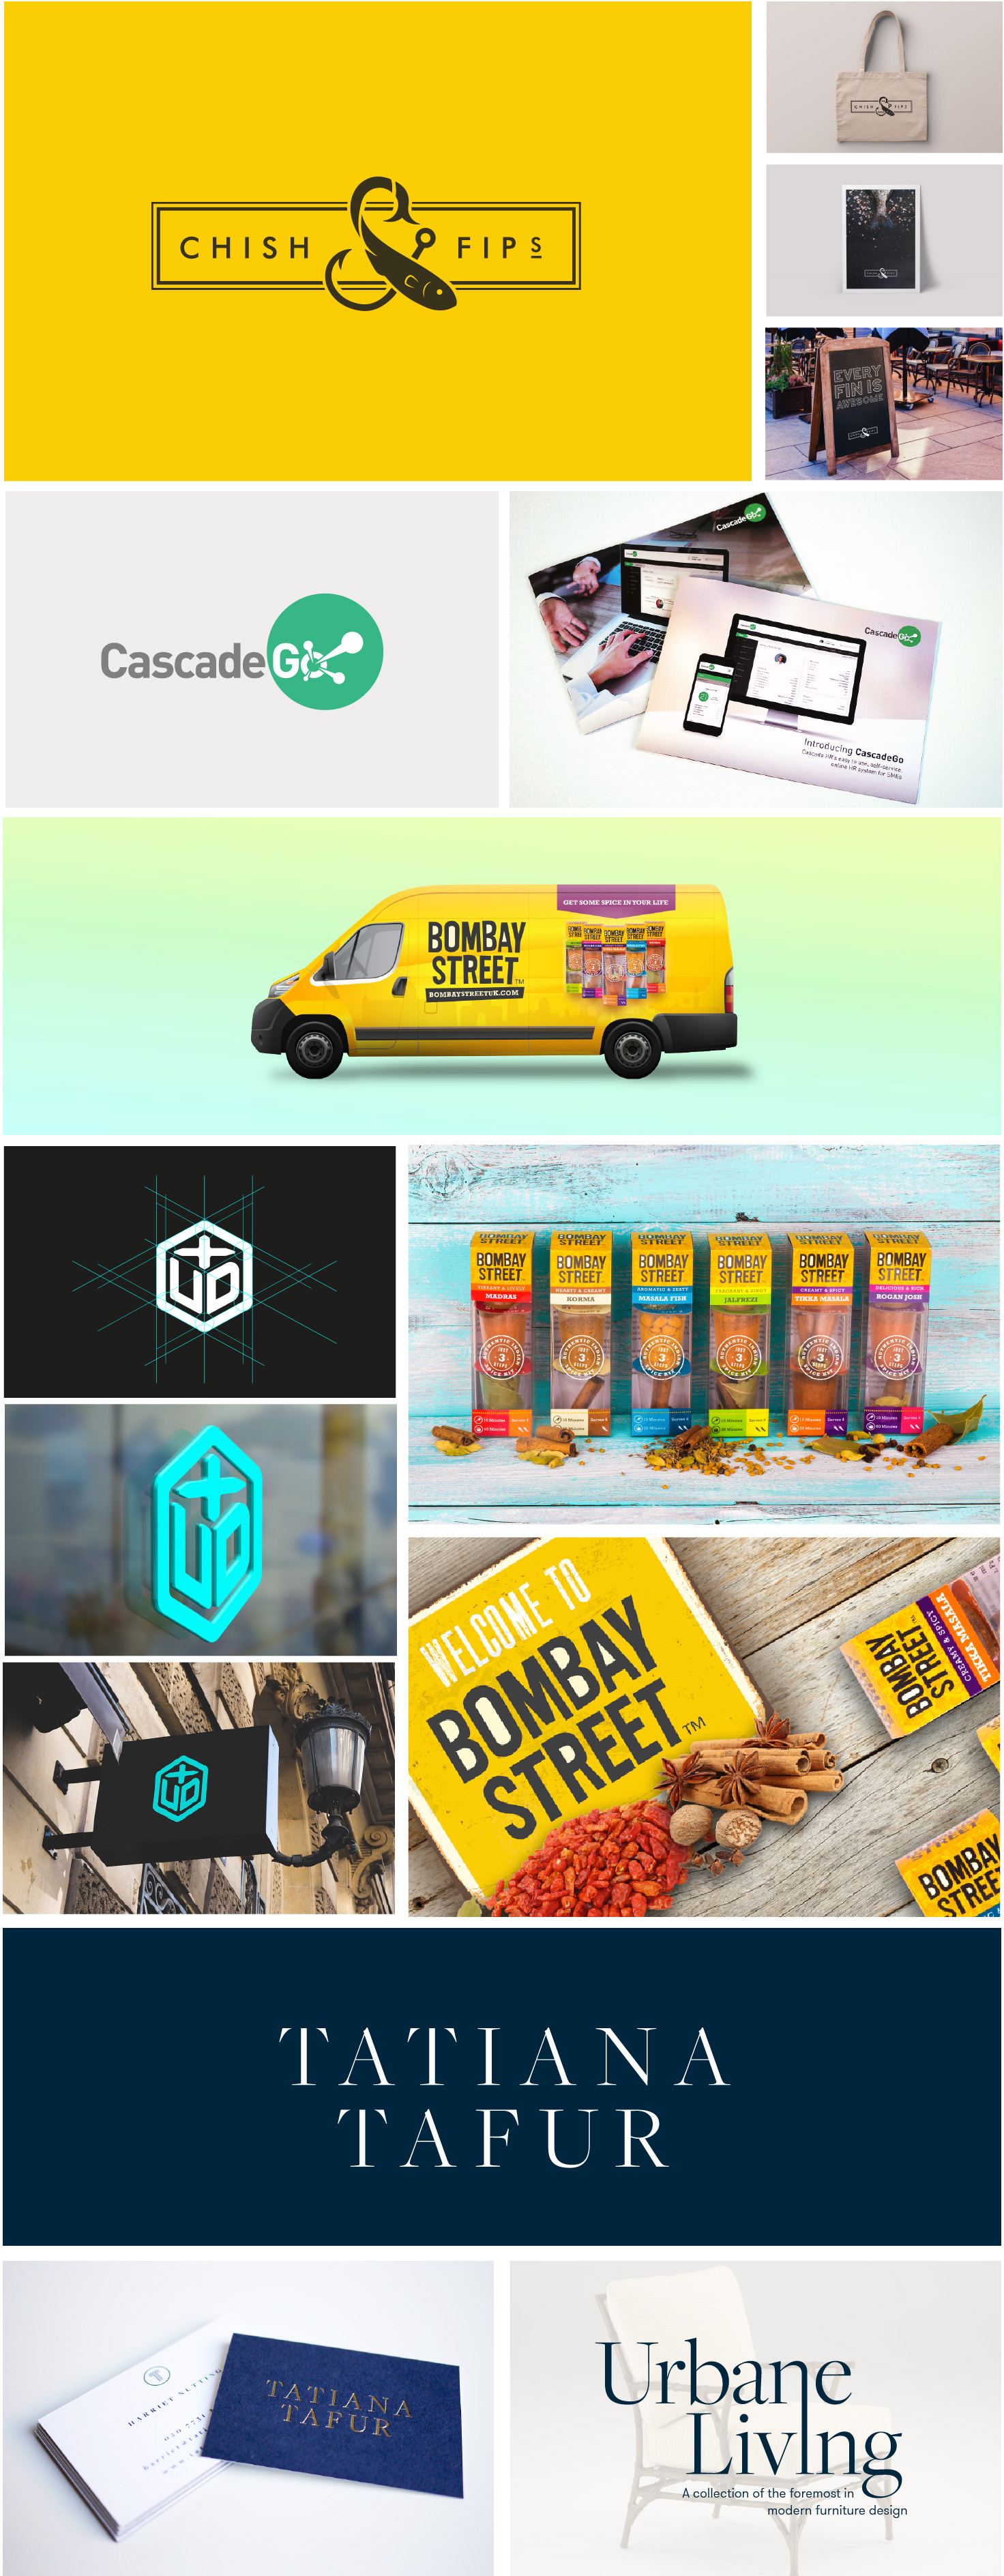 Marvellous branding showcase